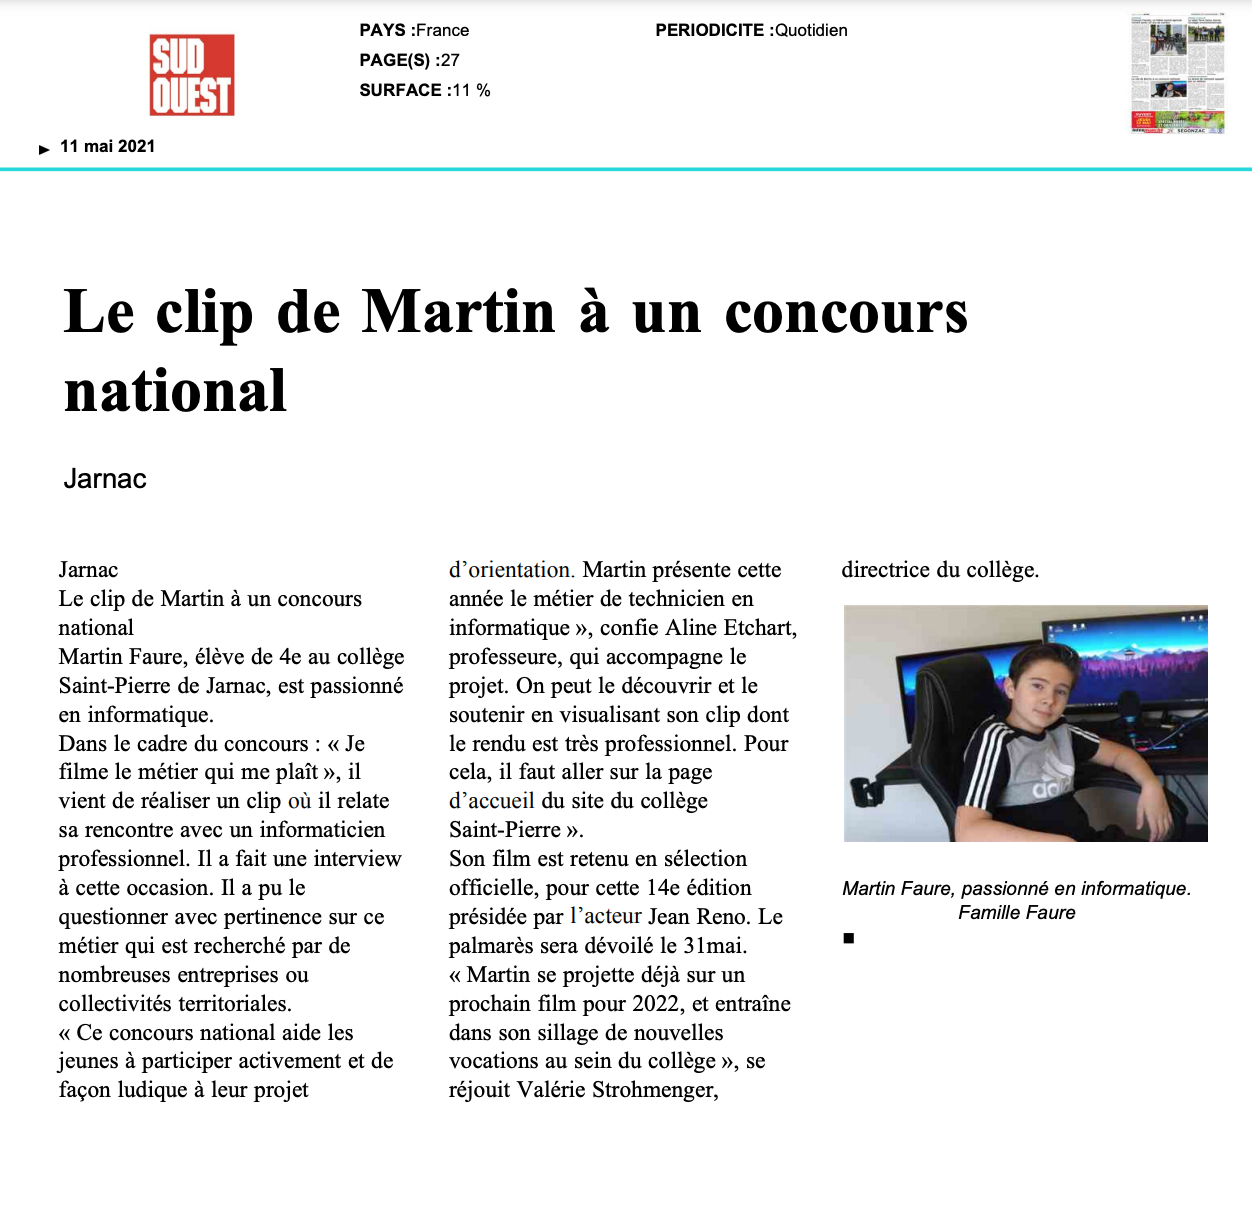 Sud Ouest - 11/05/2021